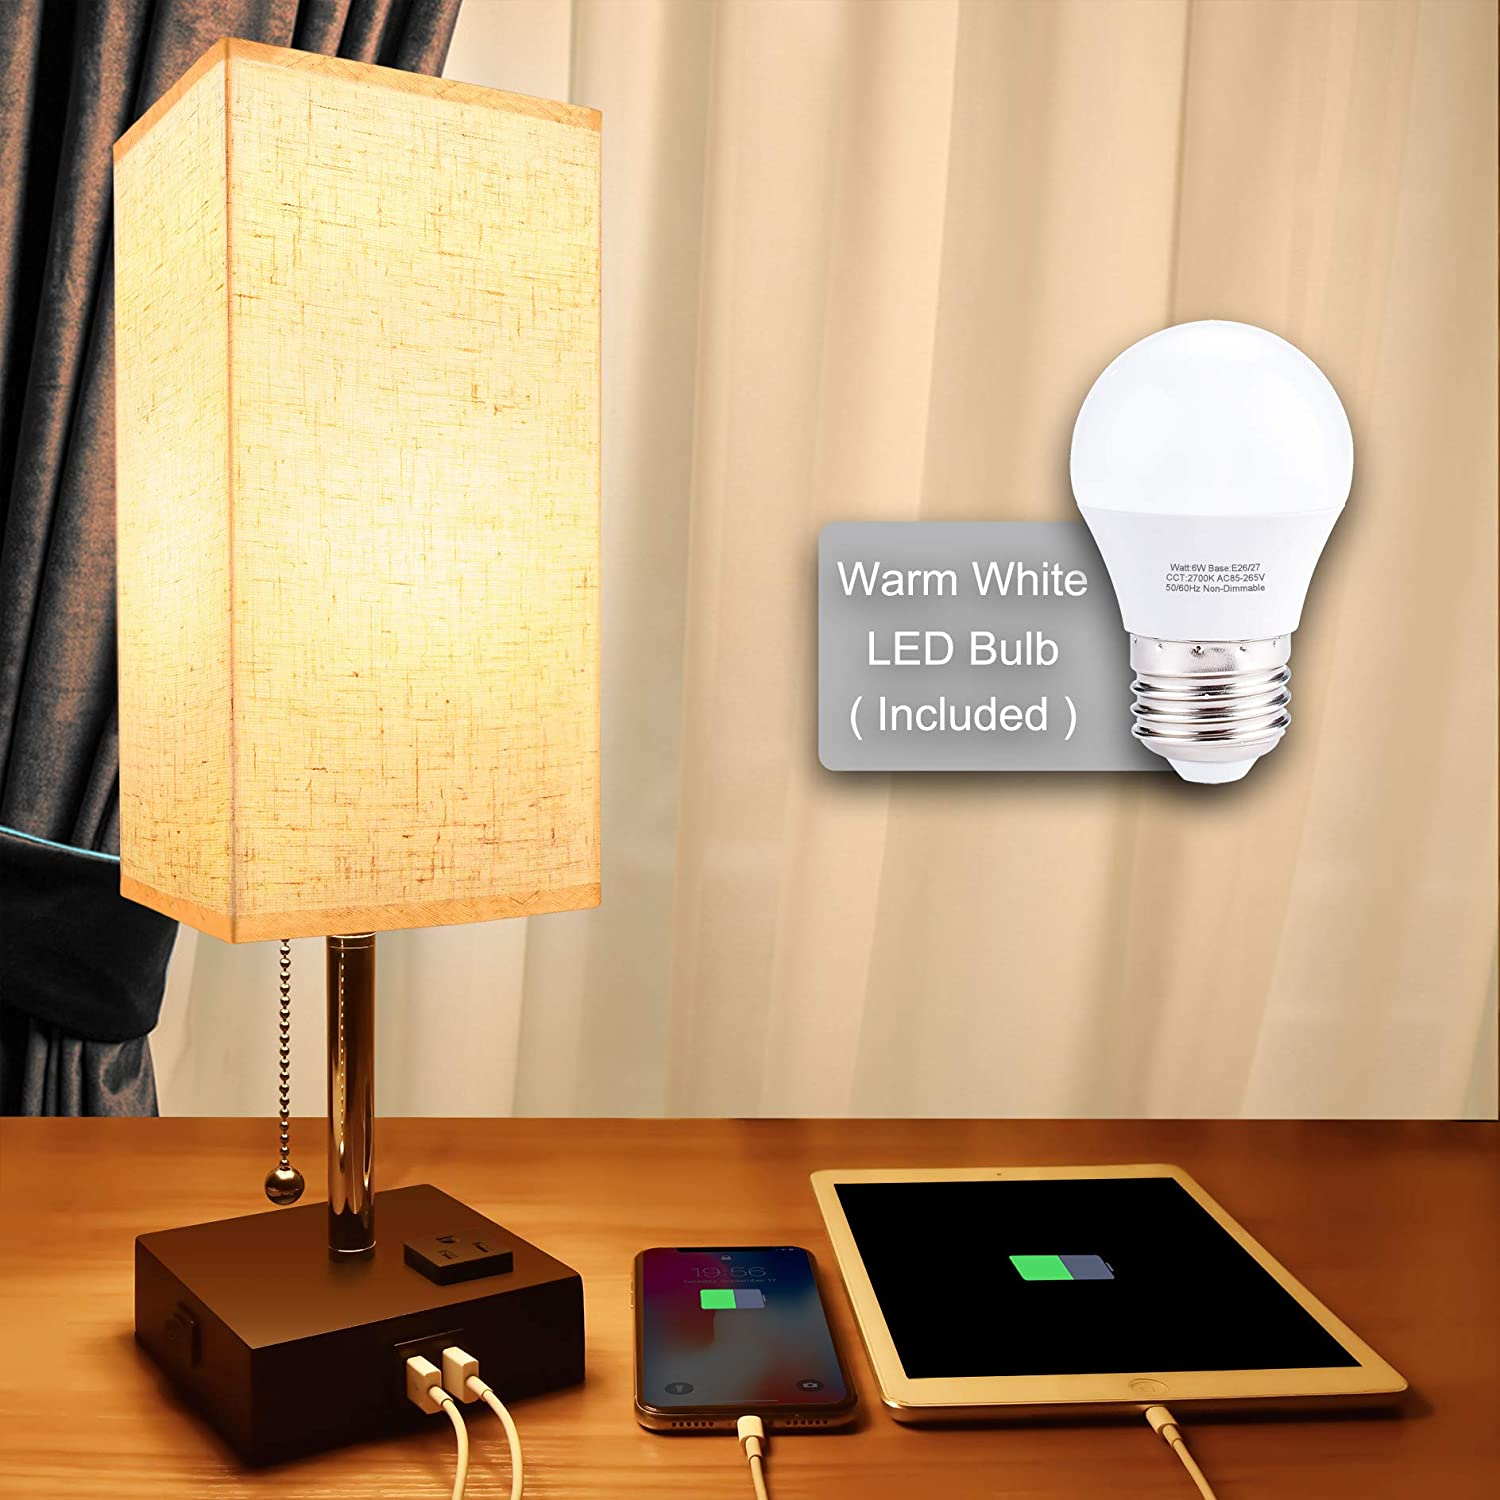 USB Bedside Table Lamp,Cotanic Minimalist Bedside Desk Lamp with Charging Port,Lamps for Bedrooms,Fabric Shade Ambient Light,Modern Nightstand Lamp with Pull Chain